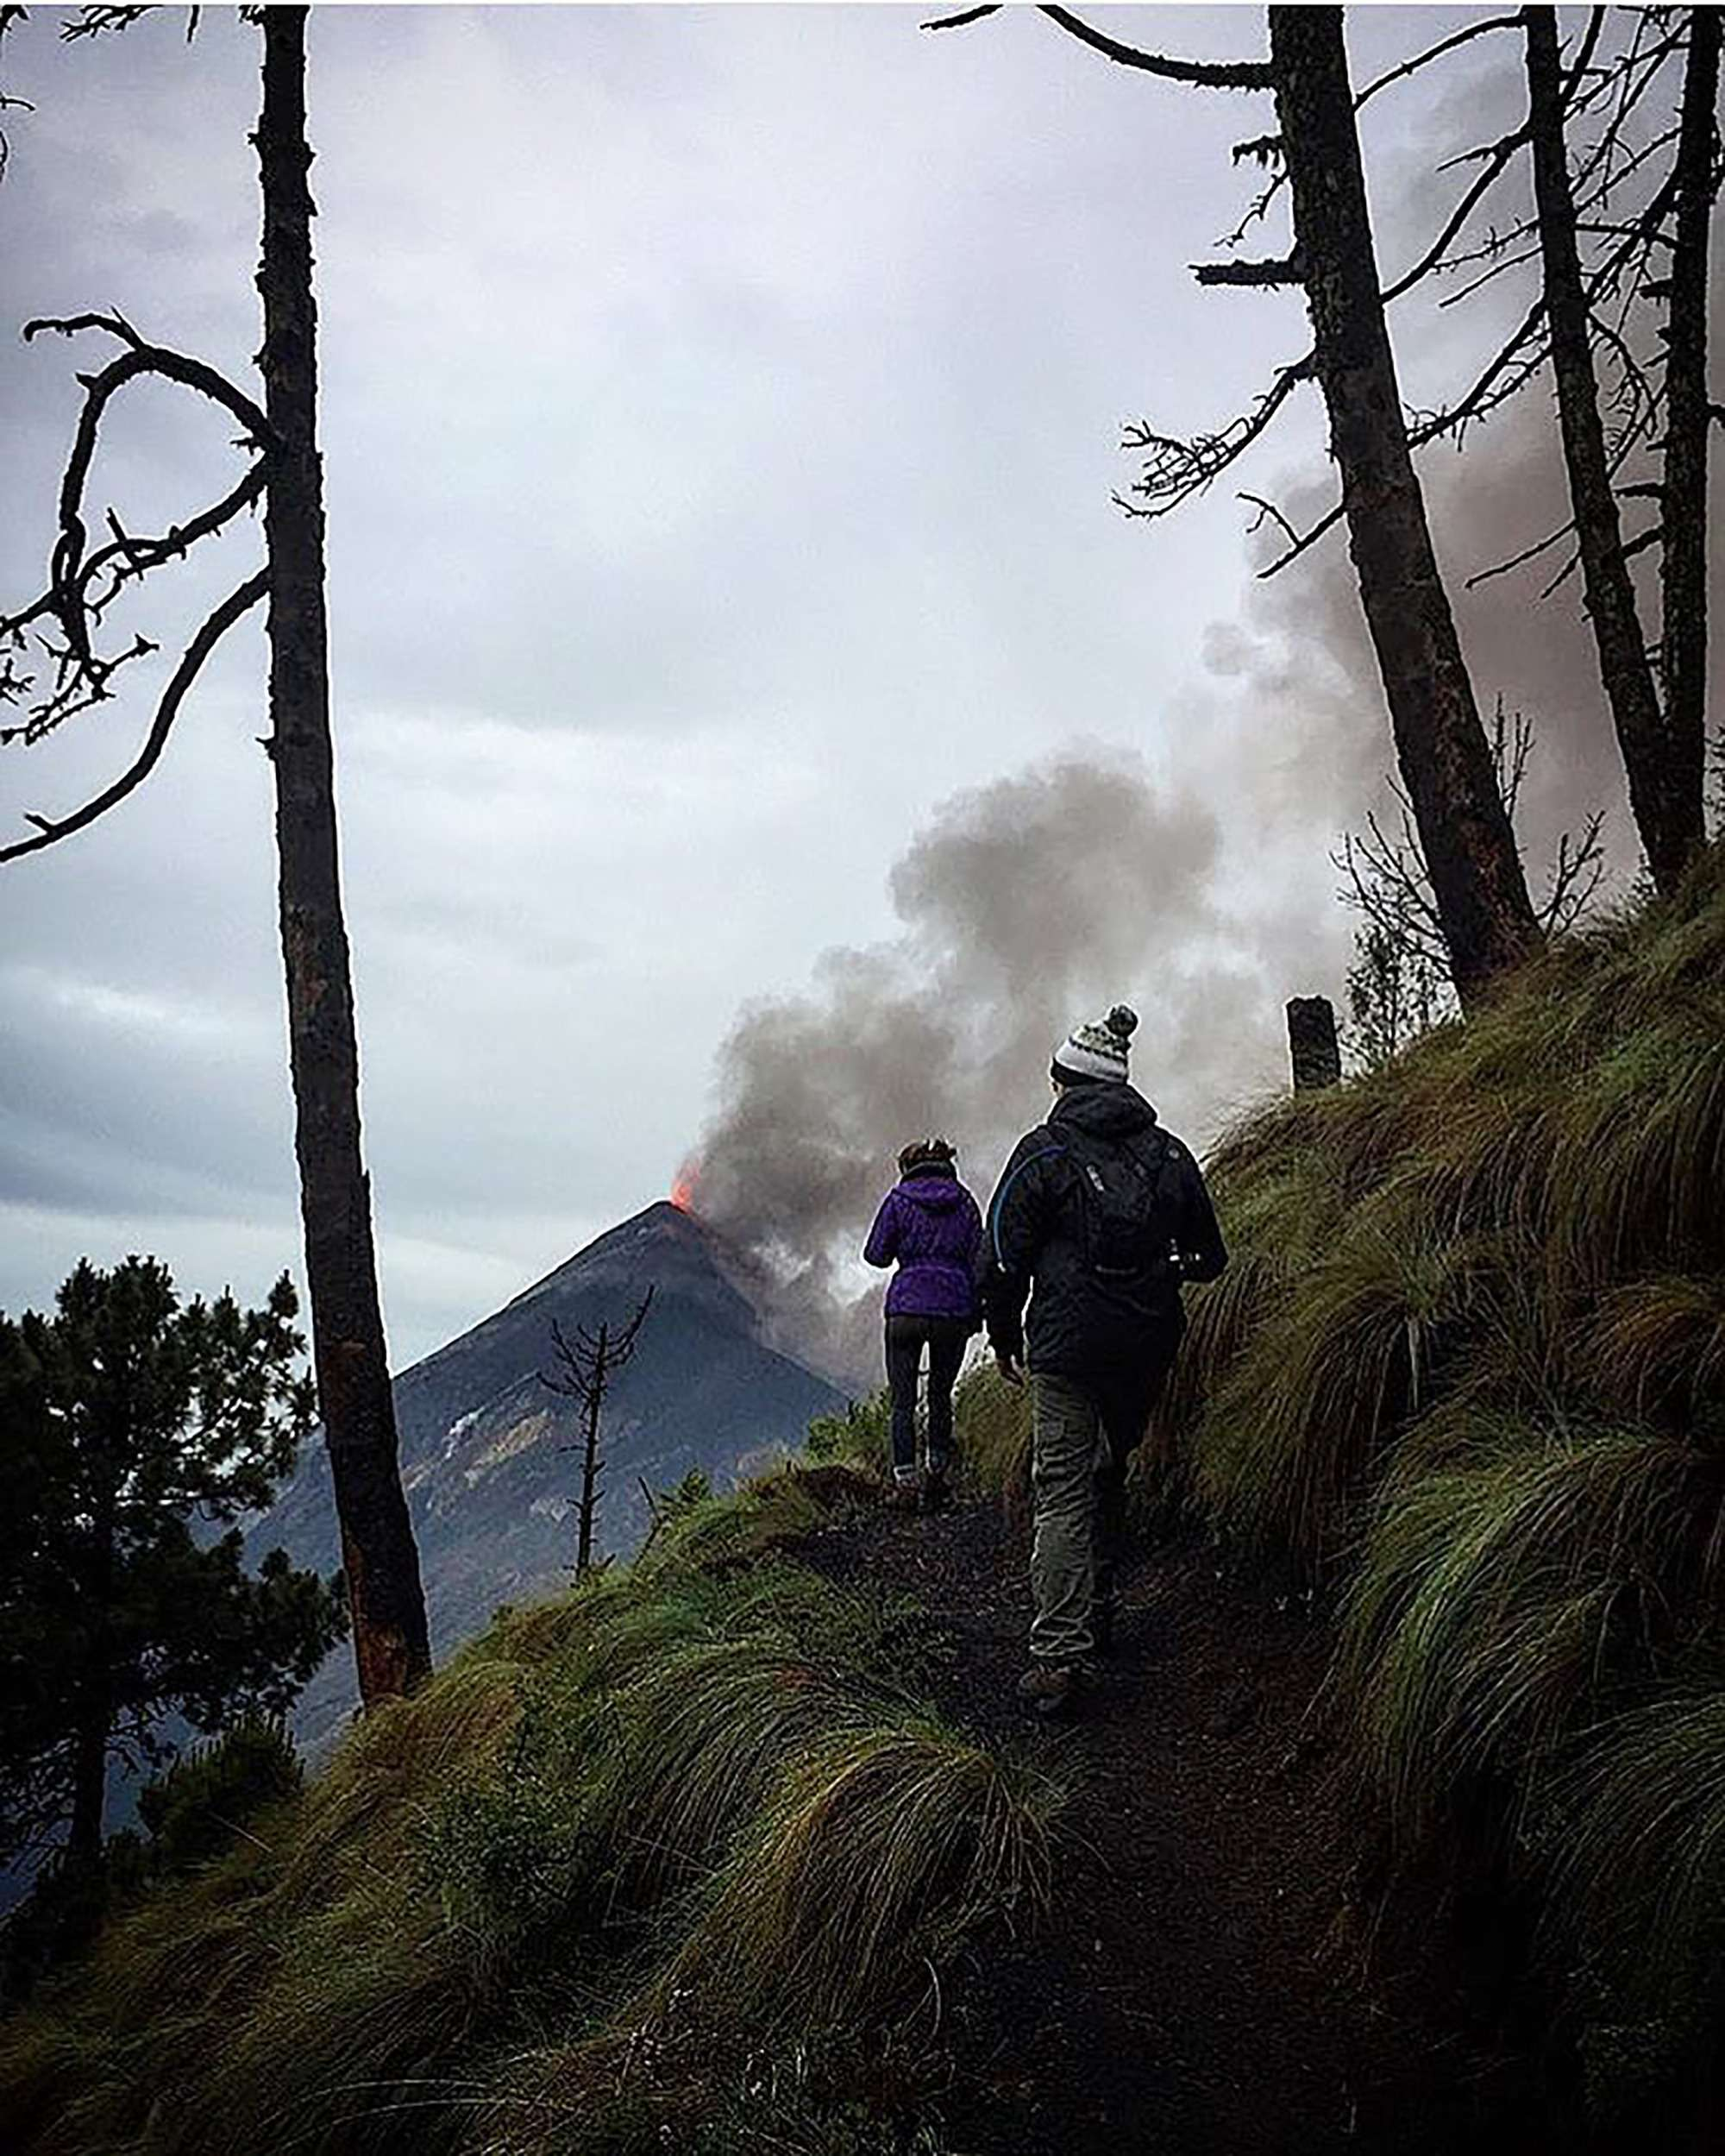 Two hikers on the trail up Acatenango volcano with an erupting Fuego volcano in the distance